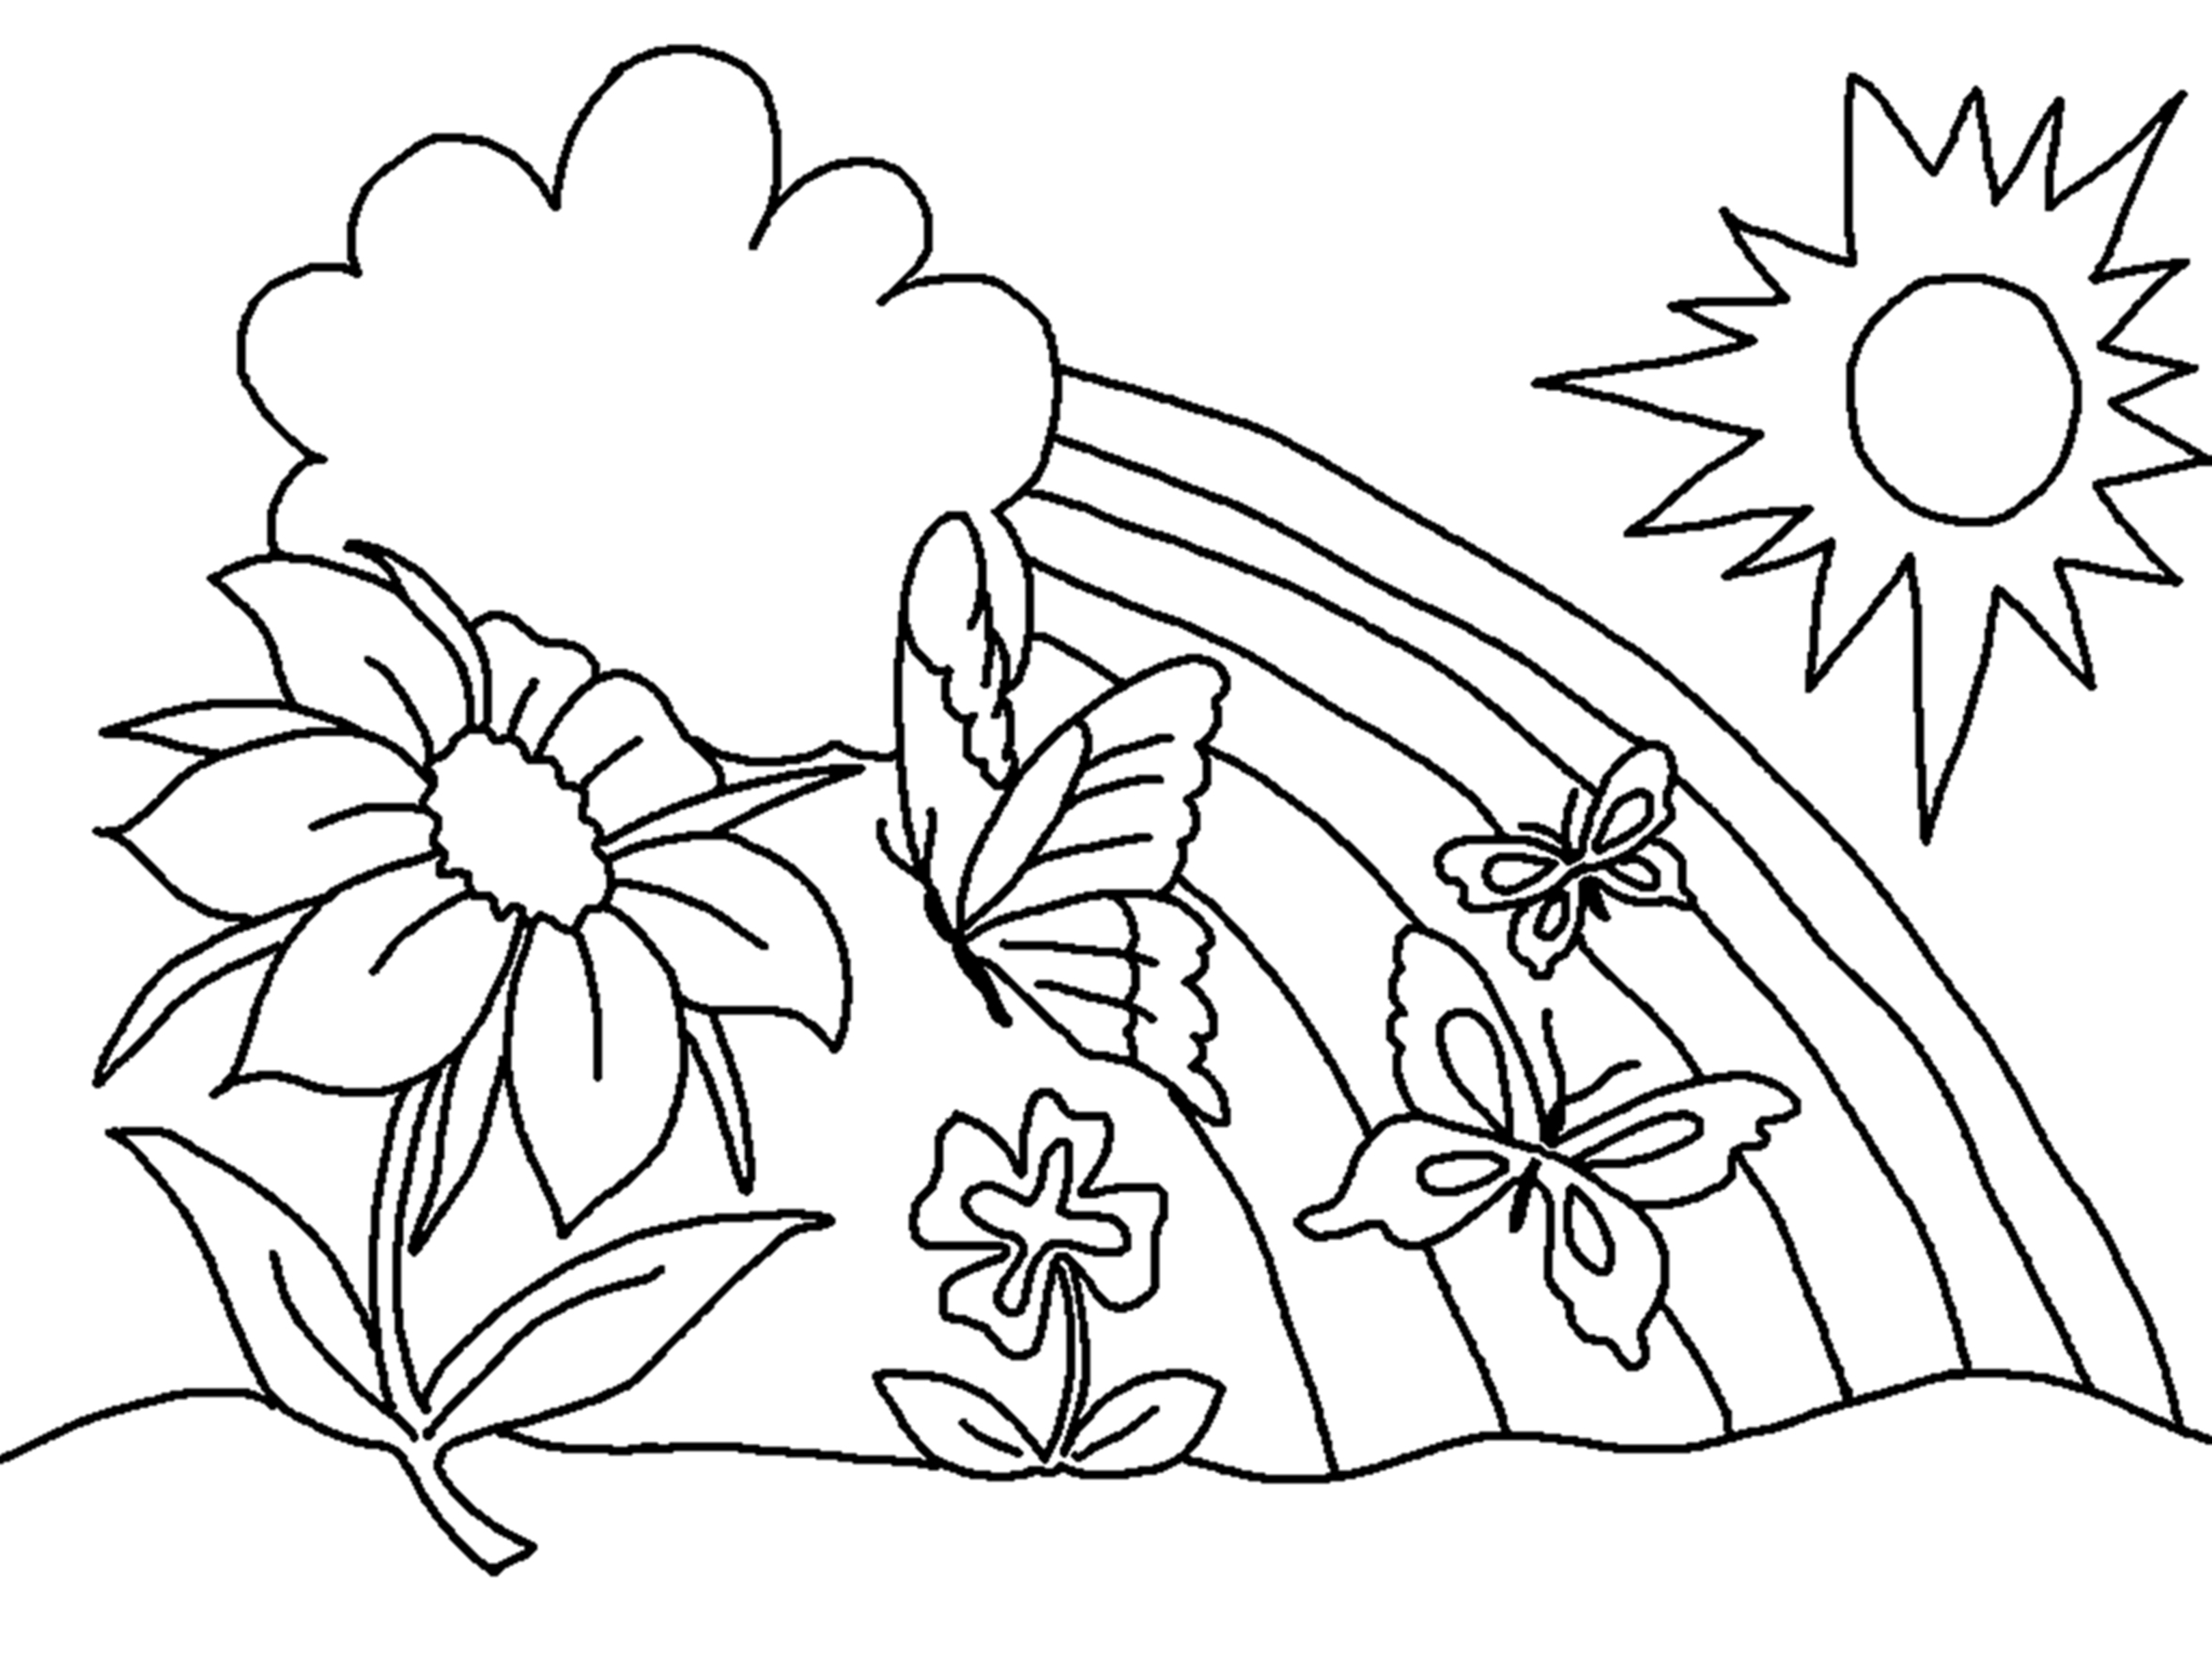 Flower Vines Drawing at GetDrawings.com | Free for personal use ...